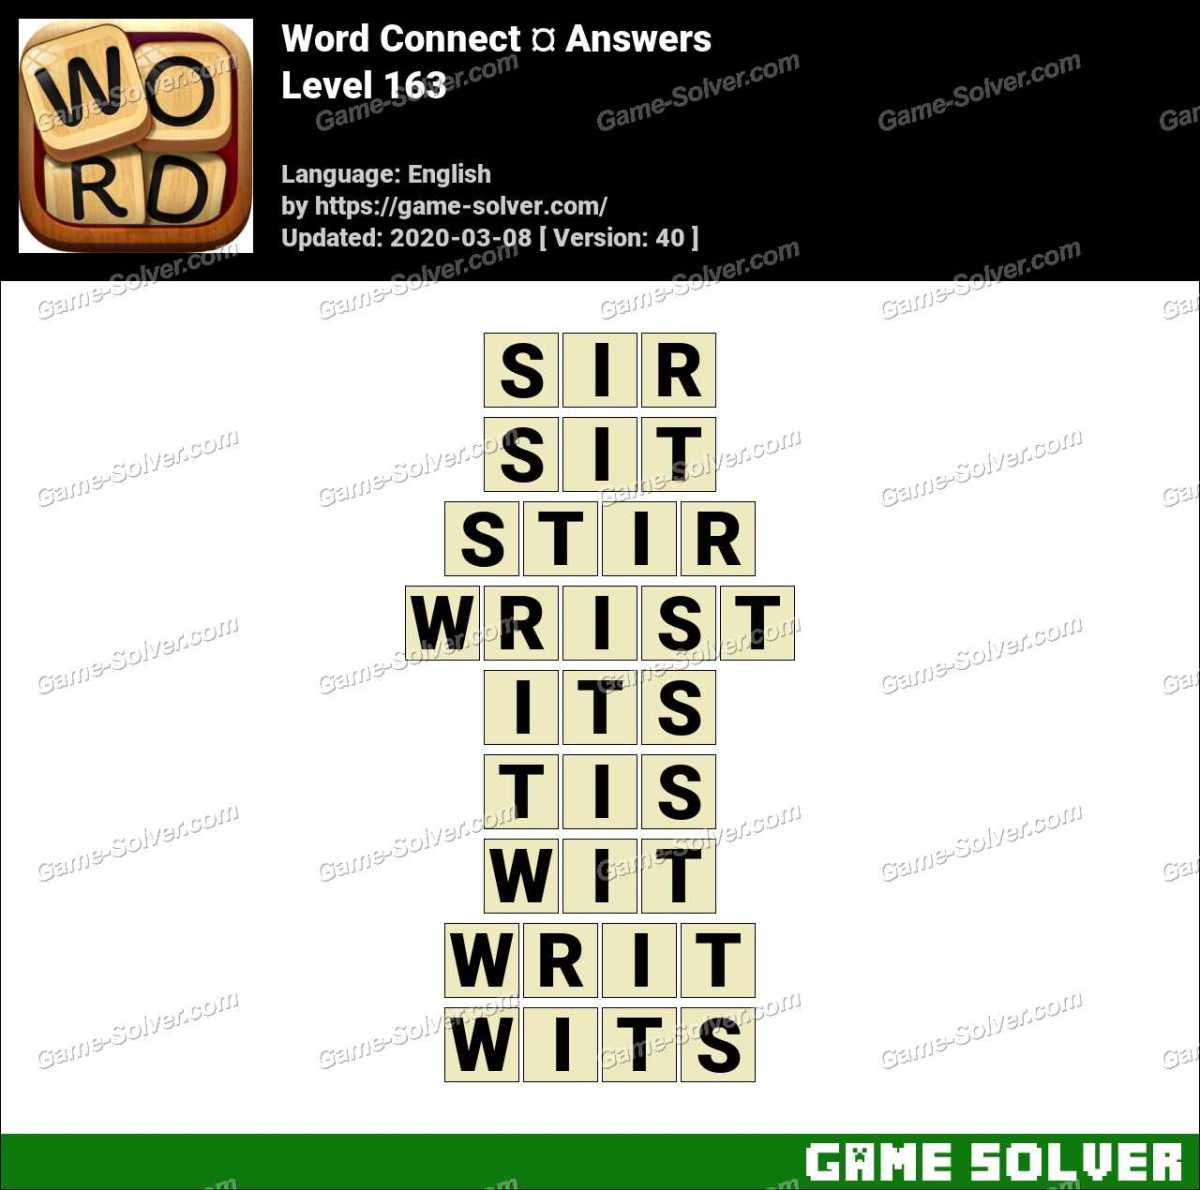 Word Connect Level 163 Answers